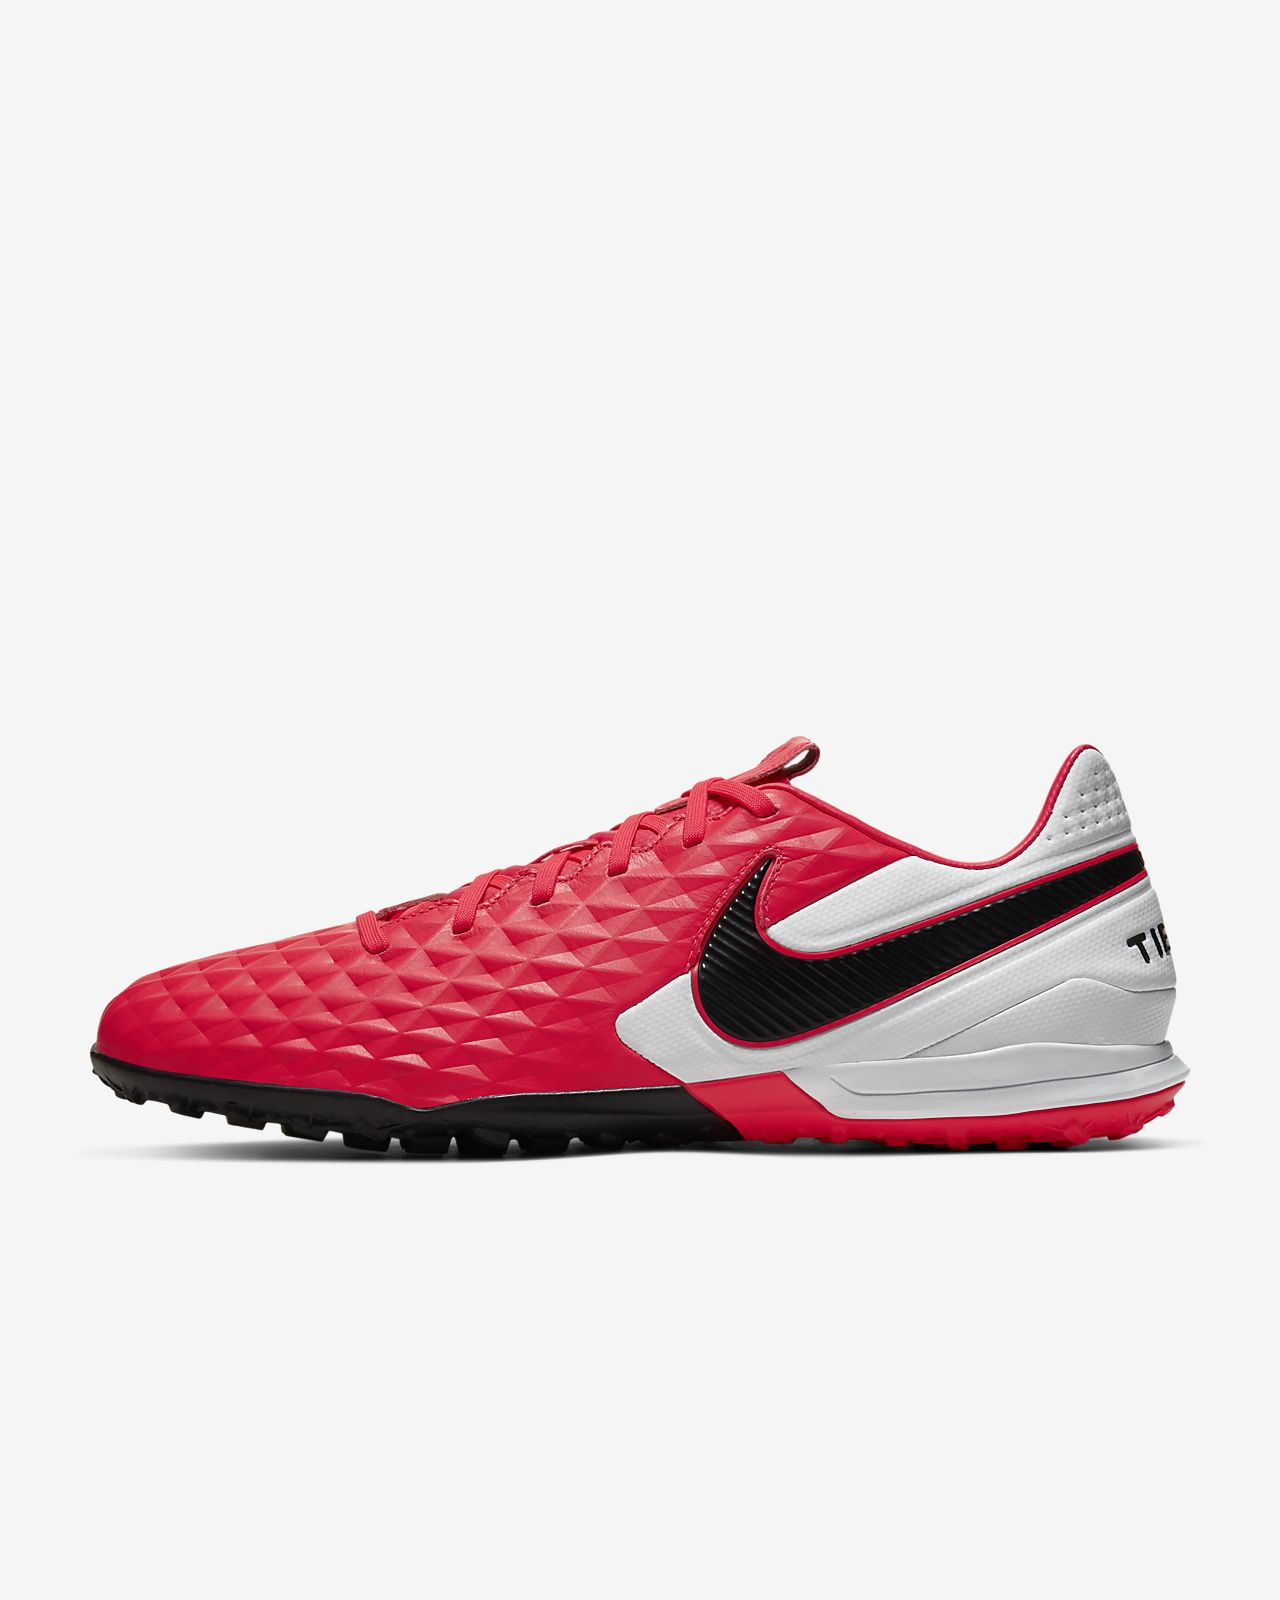 Nike Tiempo Indoor Soccer Shoes Weight Indoor Soccer Shoes